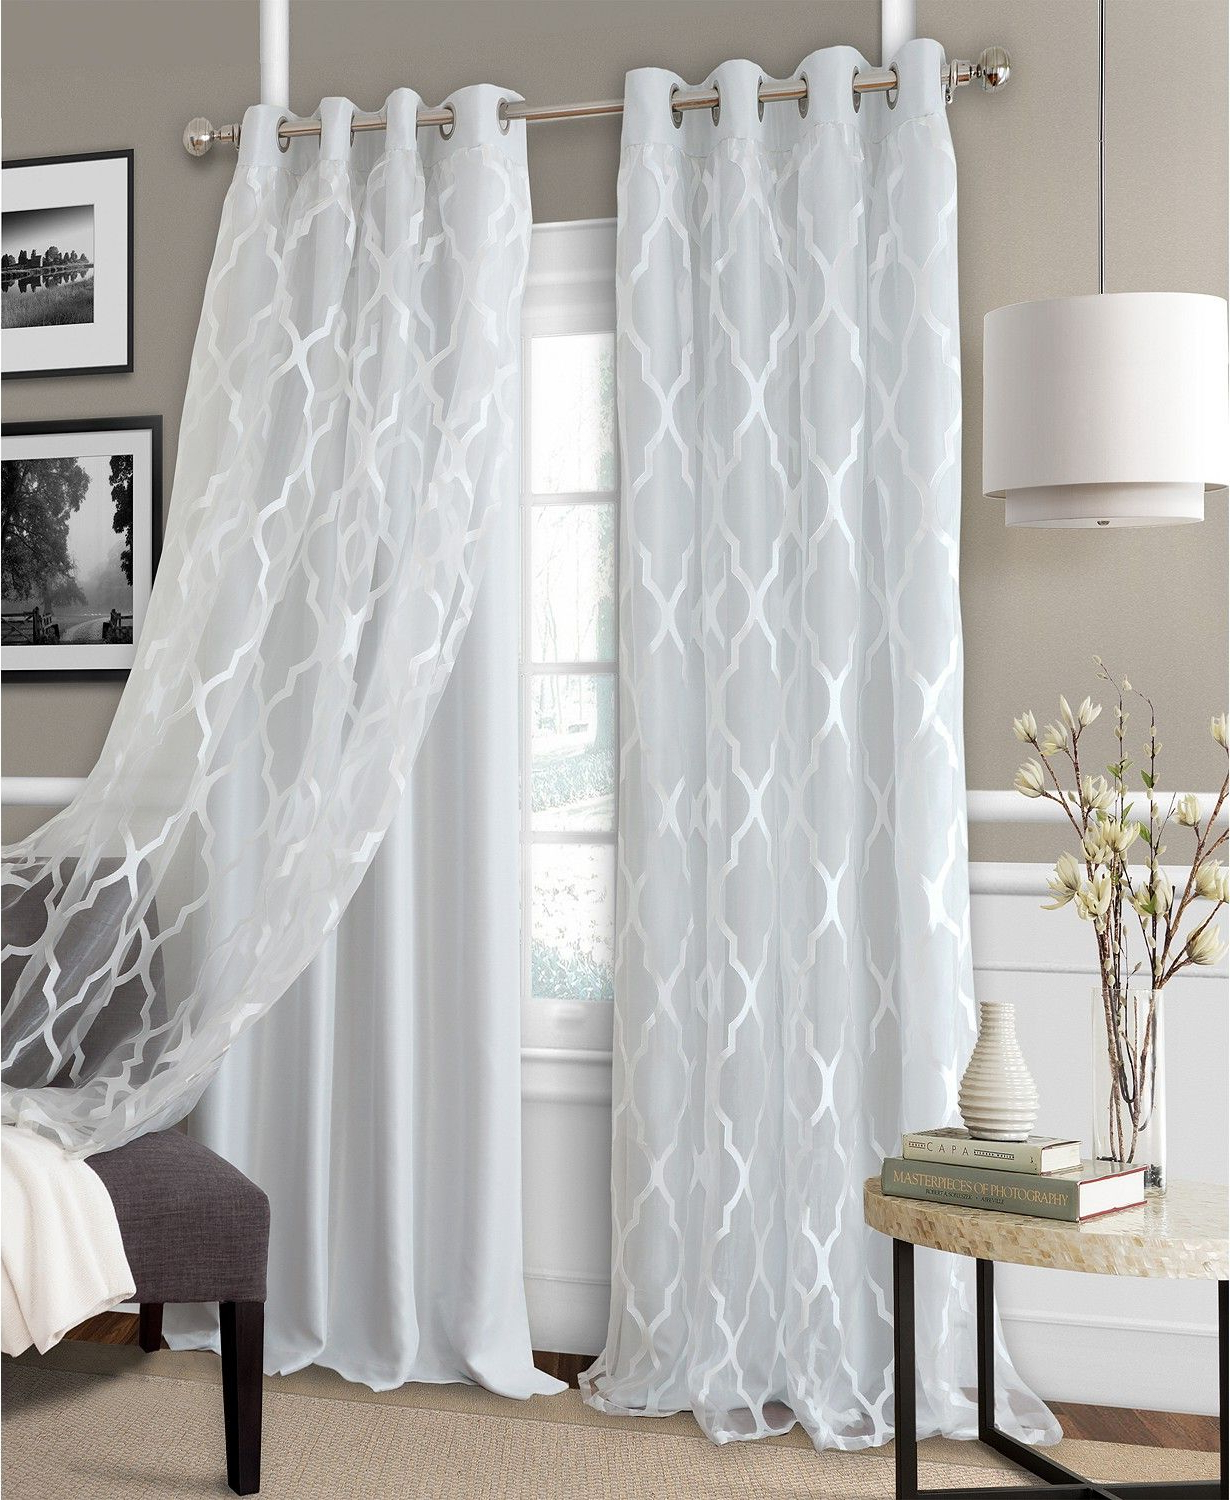 Bethany 52 X 95 Sheer Overlay Blackout Grommet Curtain Panel Within Fashionable Bethany Sheer Overlay Blackout Window Curtains (View 3 of 20)